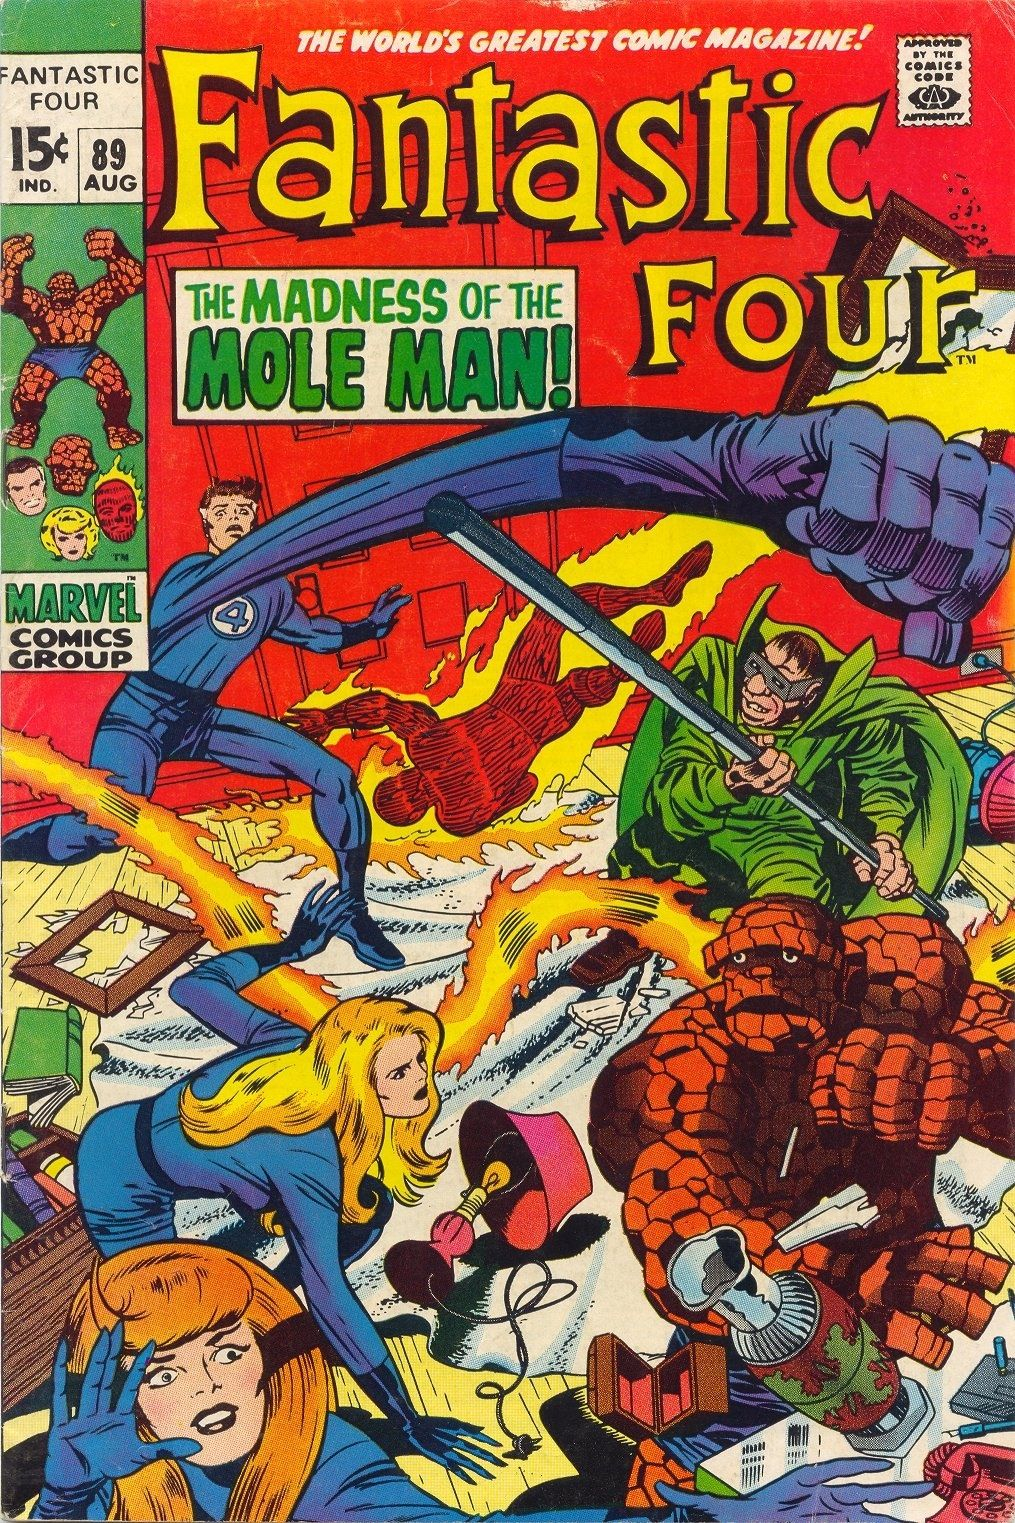 """Fantastic Four vol. 1 # 89, """"The Madness of the Mole Man"""" (August, 1969). Cover by Jack Kirby & Joe Sinnott."""